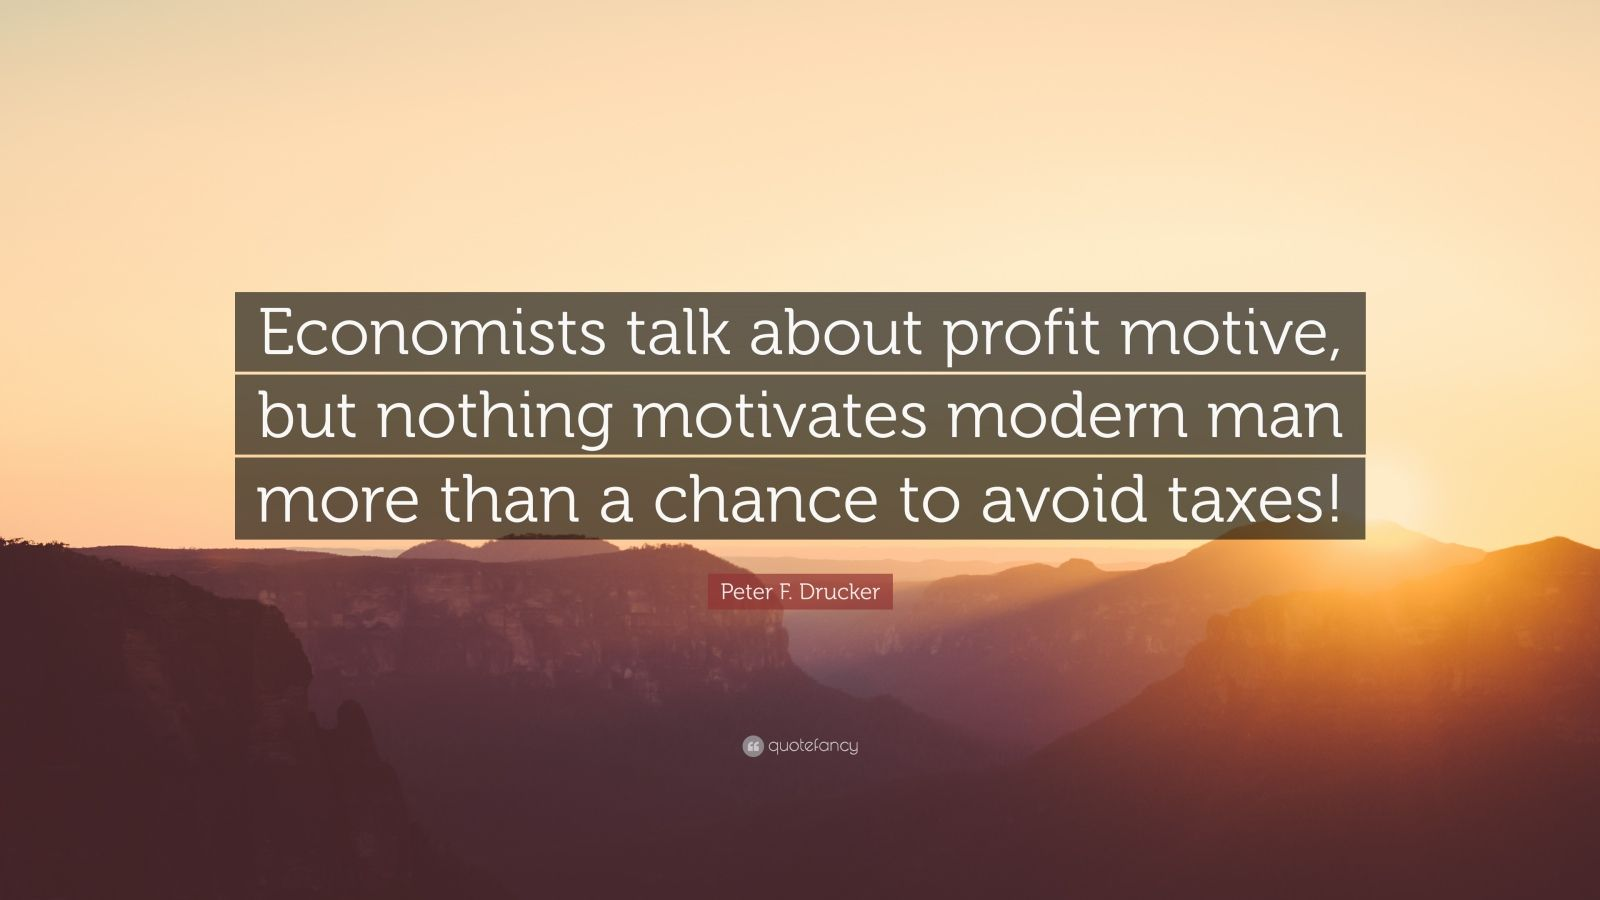 """Peter F. Drucker Quote: """"Economists talk about profit motive, but nothing motivates modern man more than a chance to avoid taxes!"""""""